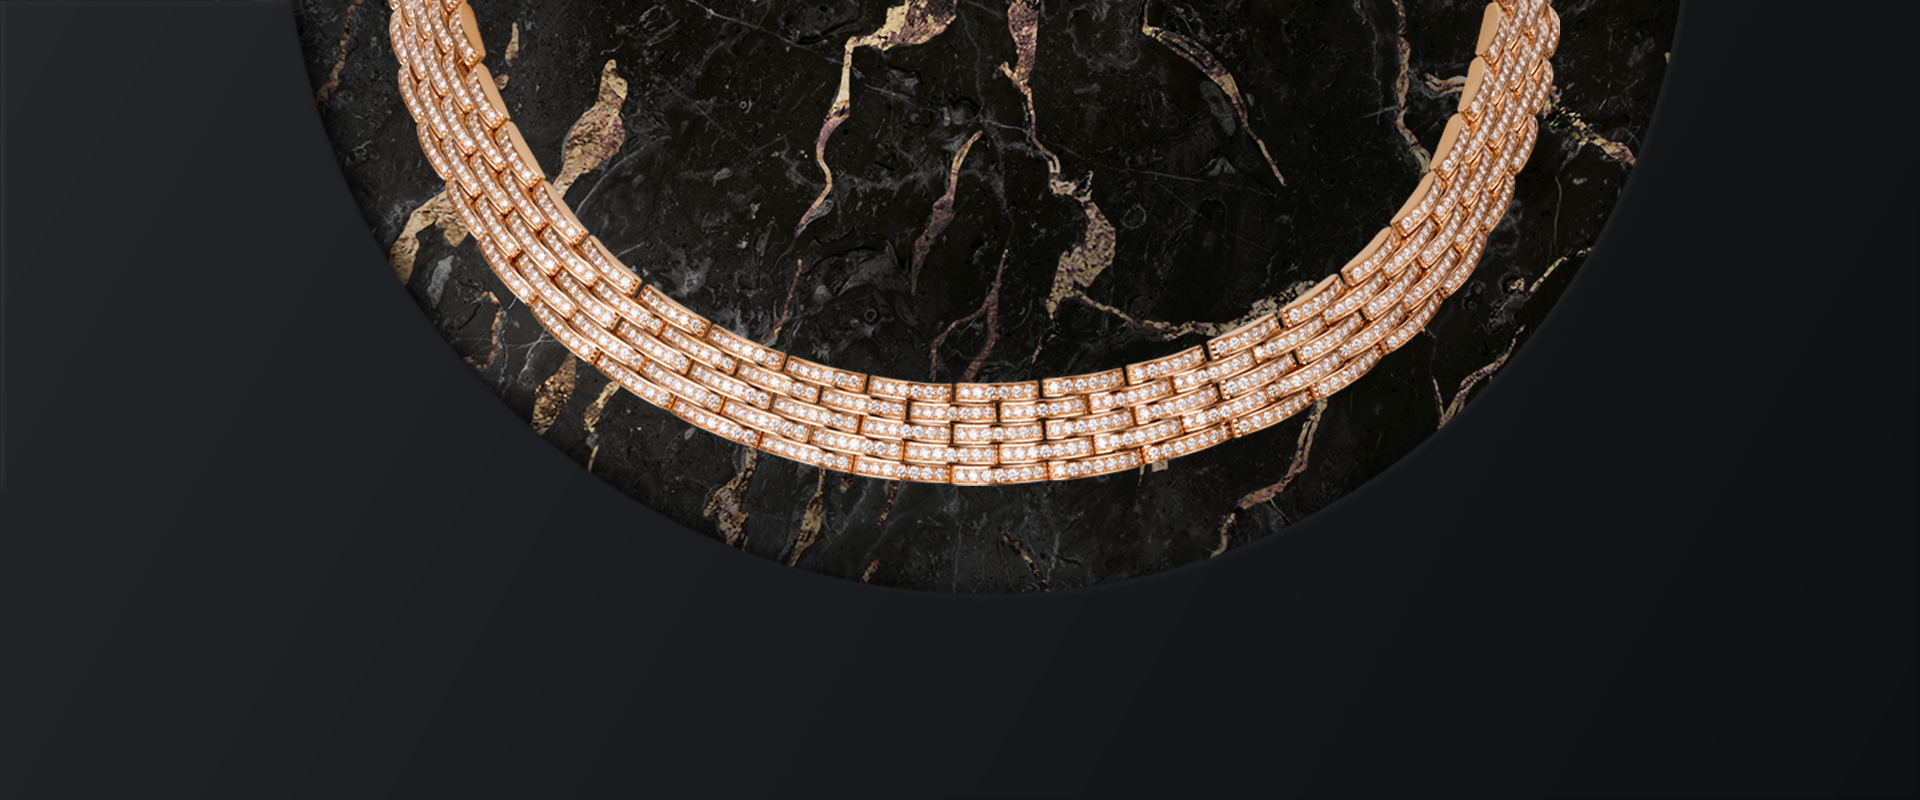 JEWELRY_TOP-BANNER_1920x800_BOLD-GOLD-NECKLACES